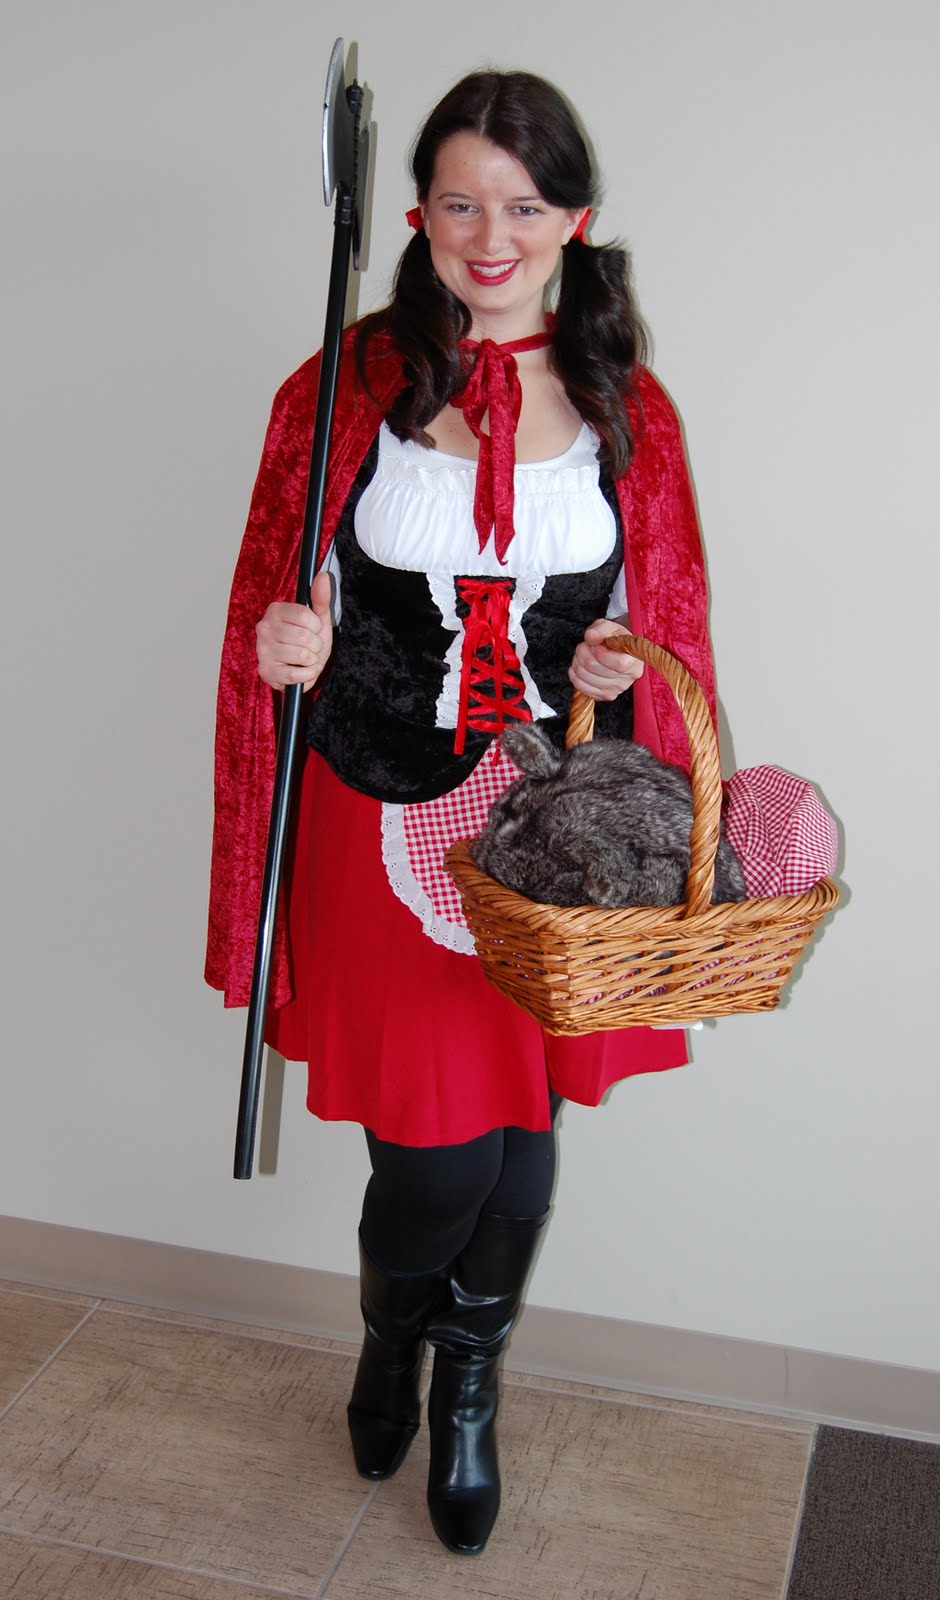 Breehalloween10 In honor of TLS, I donned a Little Red Riding Hood costume and went out on ...